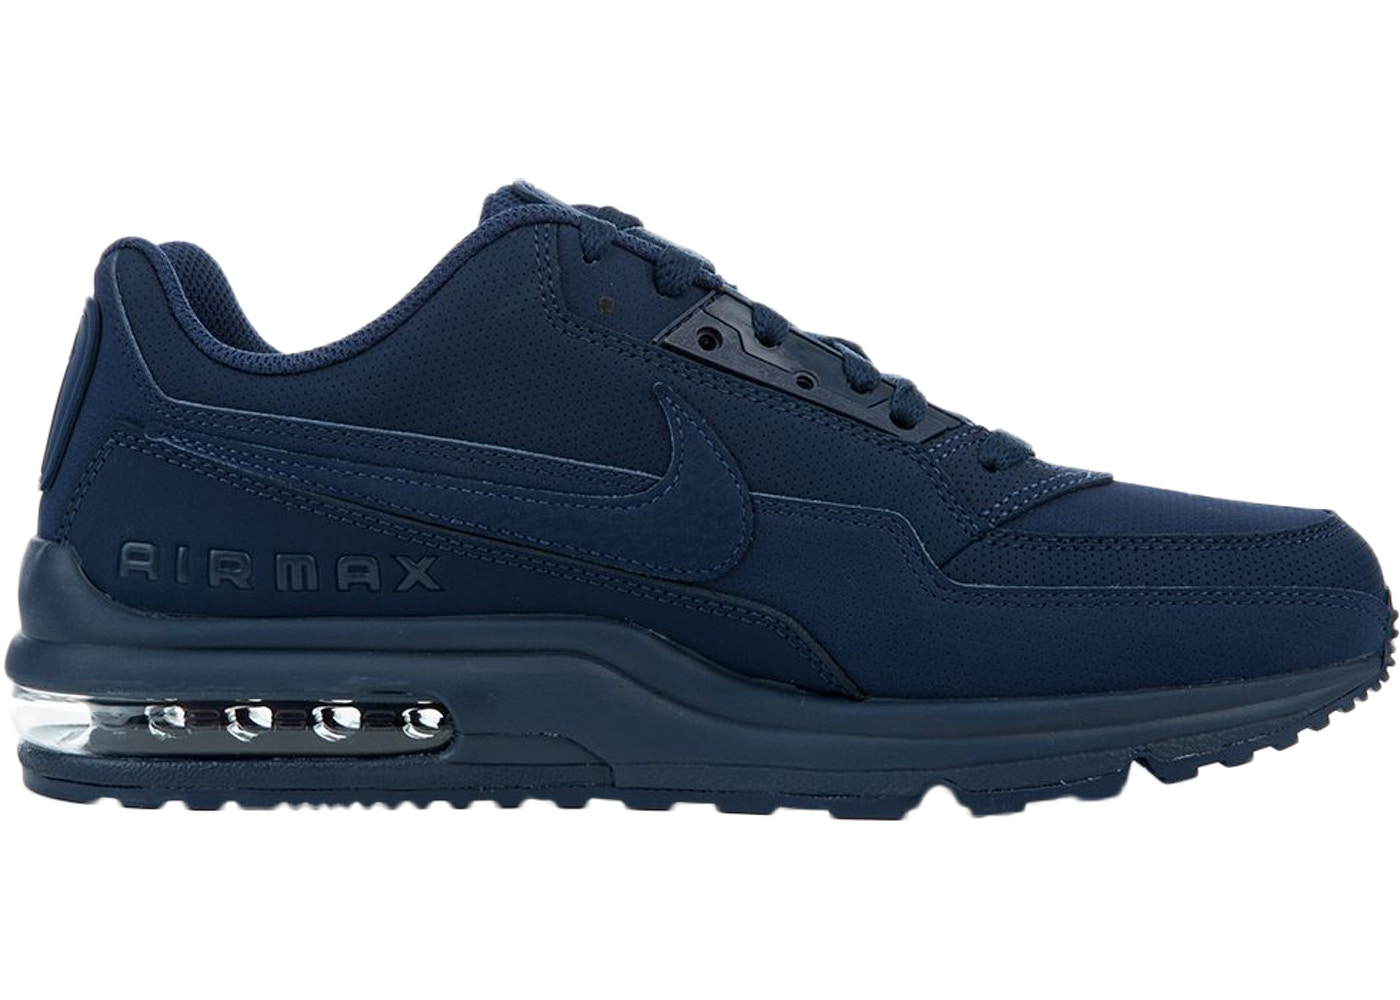 ff5ce4beea Nike Air Max Ltd 3 Midnight Navy/Midnight Navy - 687977-401